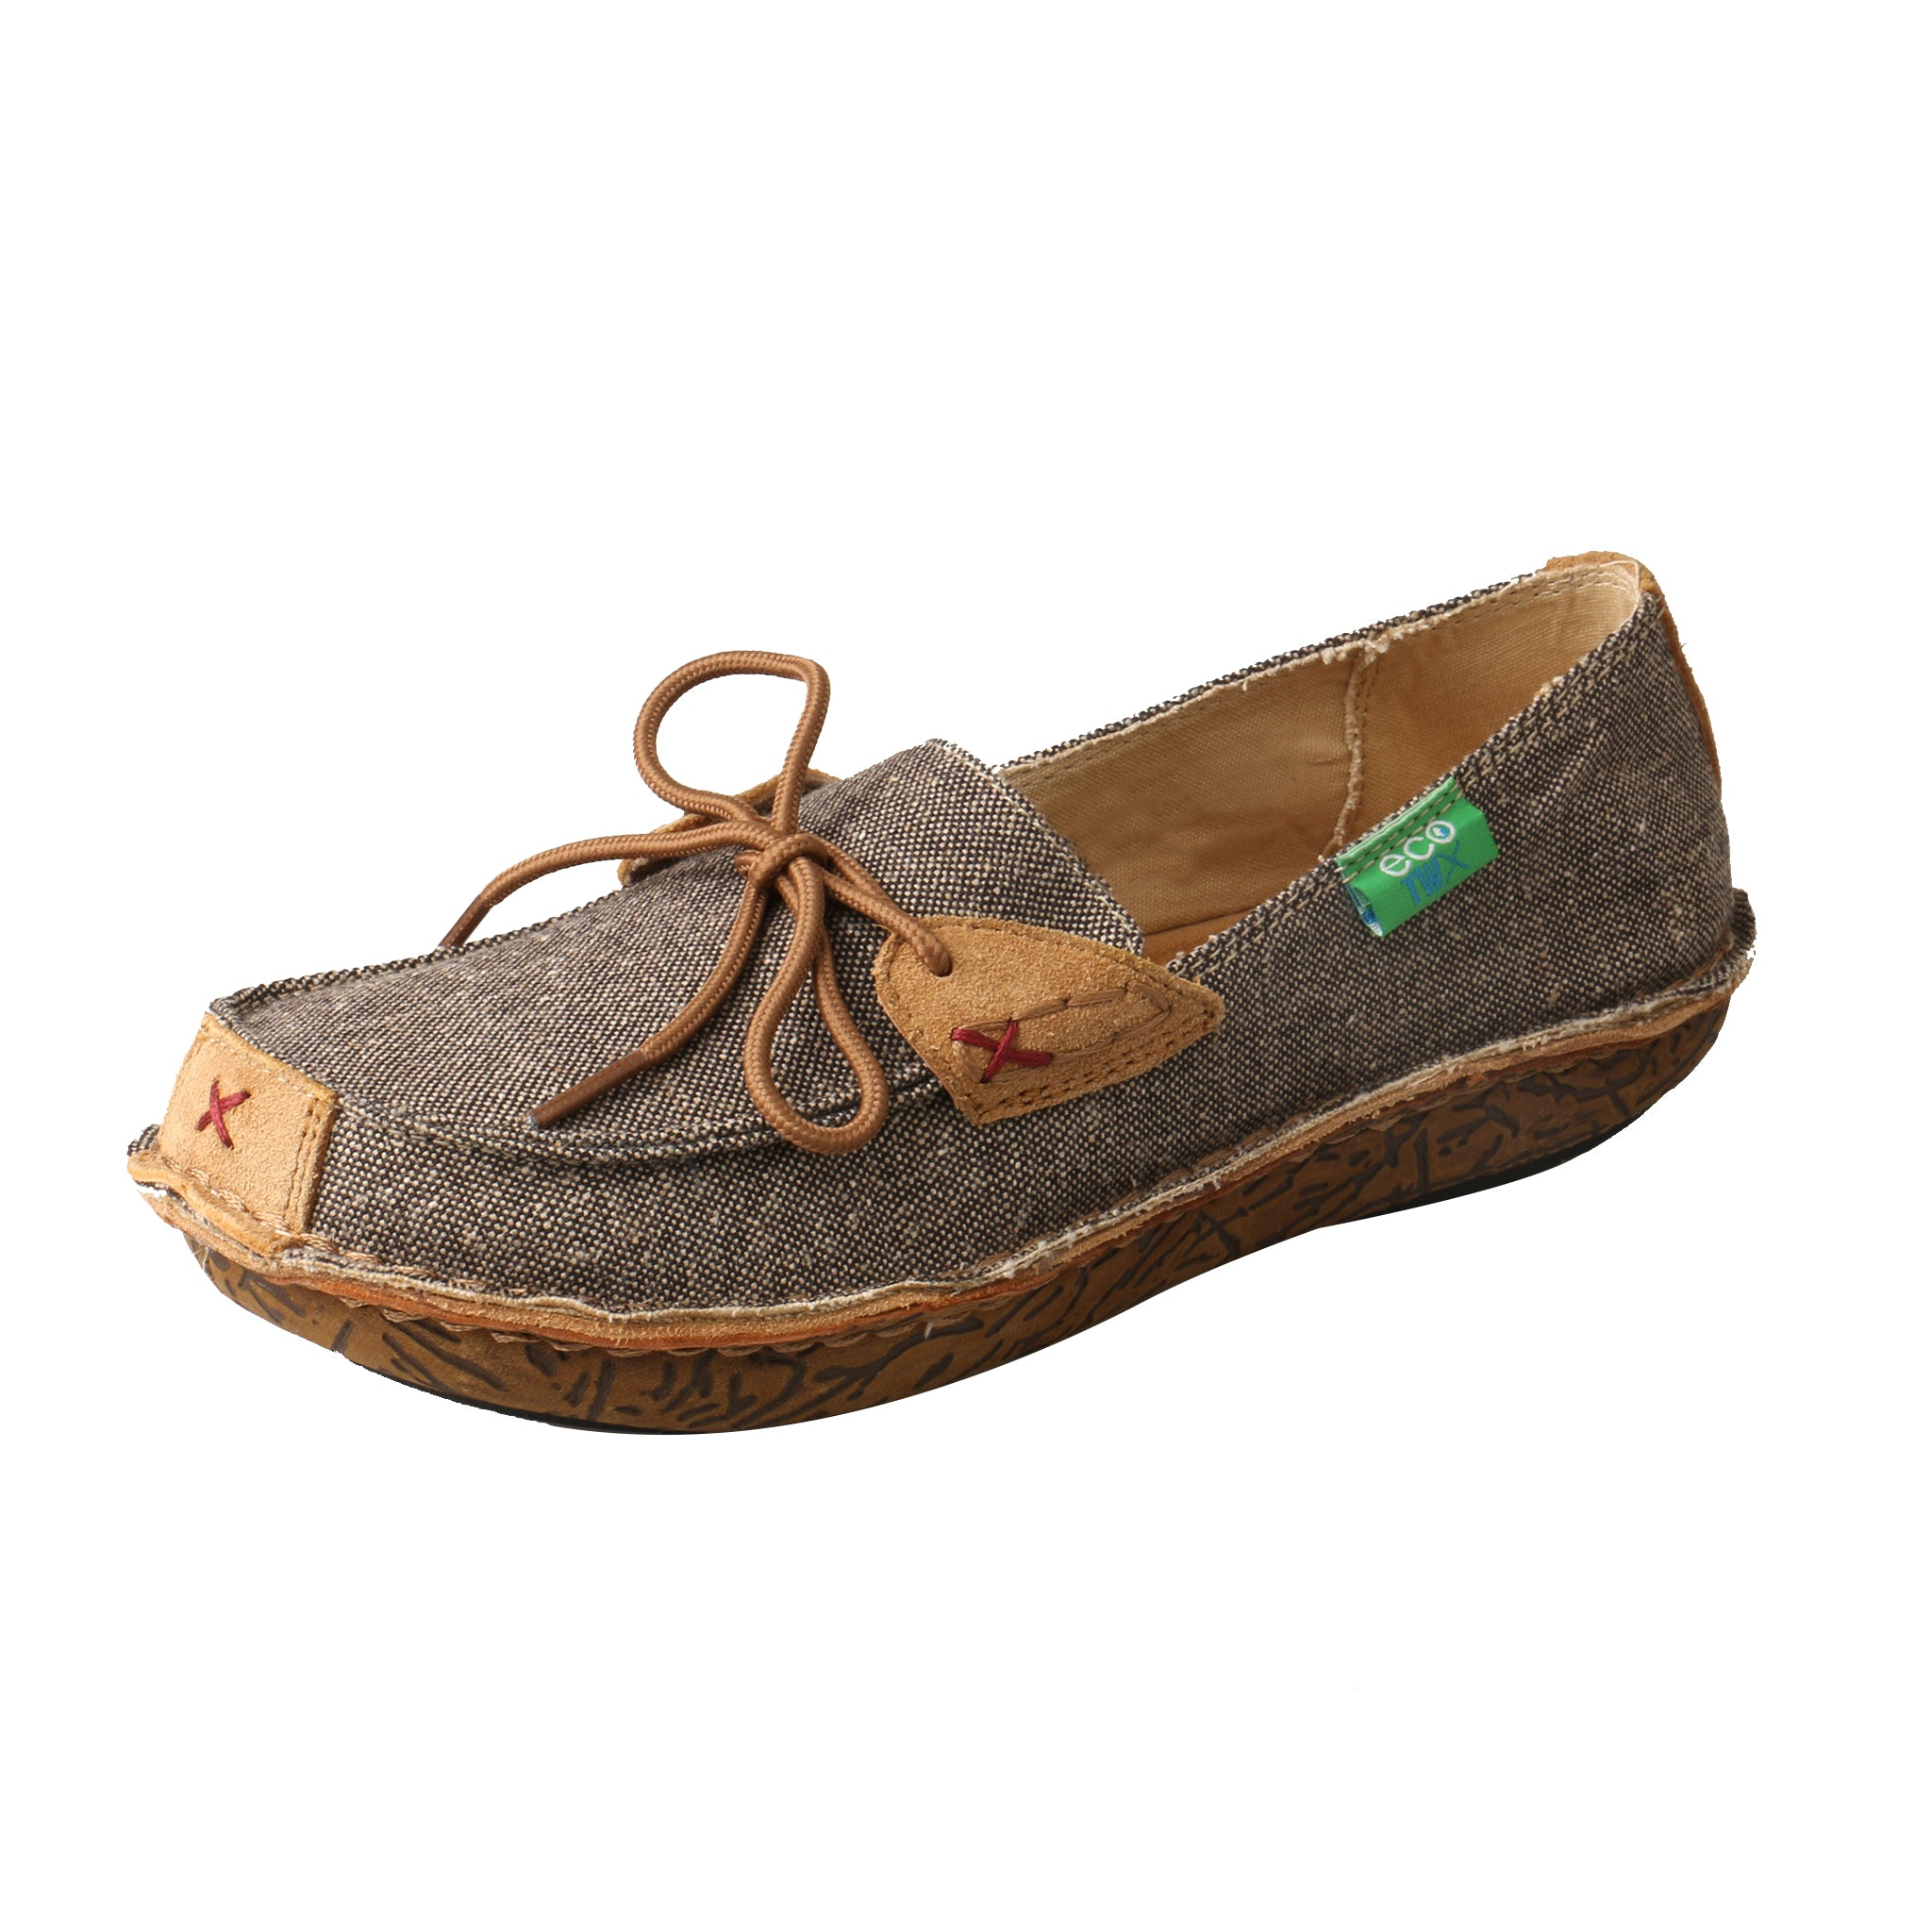 Eco Hand Stitched Leather Wrapped Moccasin - Dust